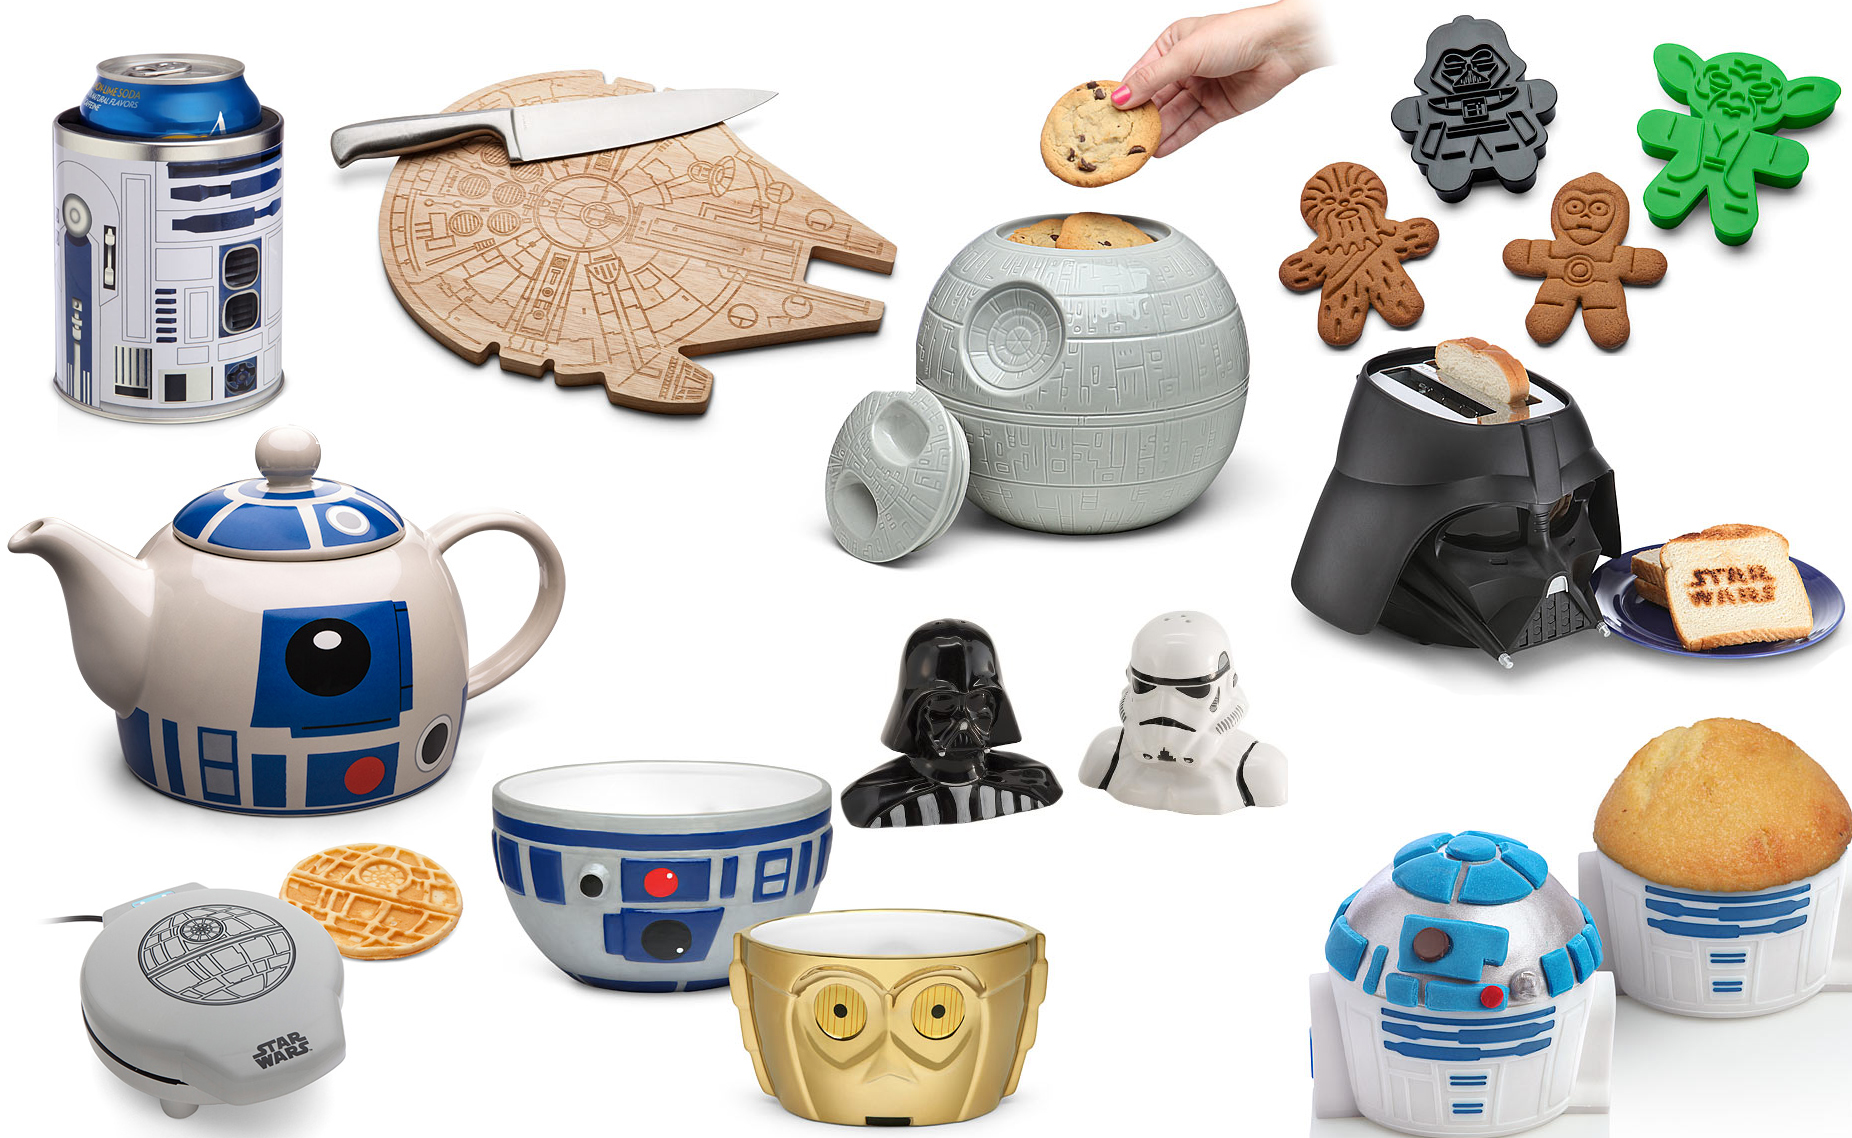 35 Star Wars Gadgets Every Kitchen in The Galaxy Must Have | Walyou